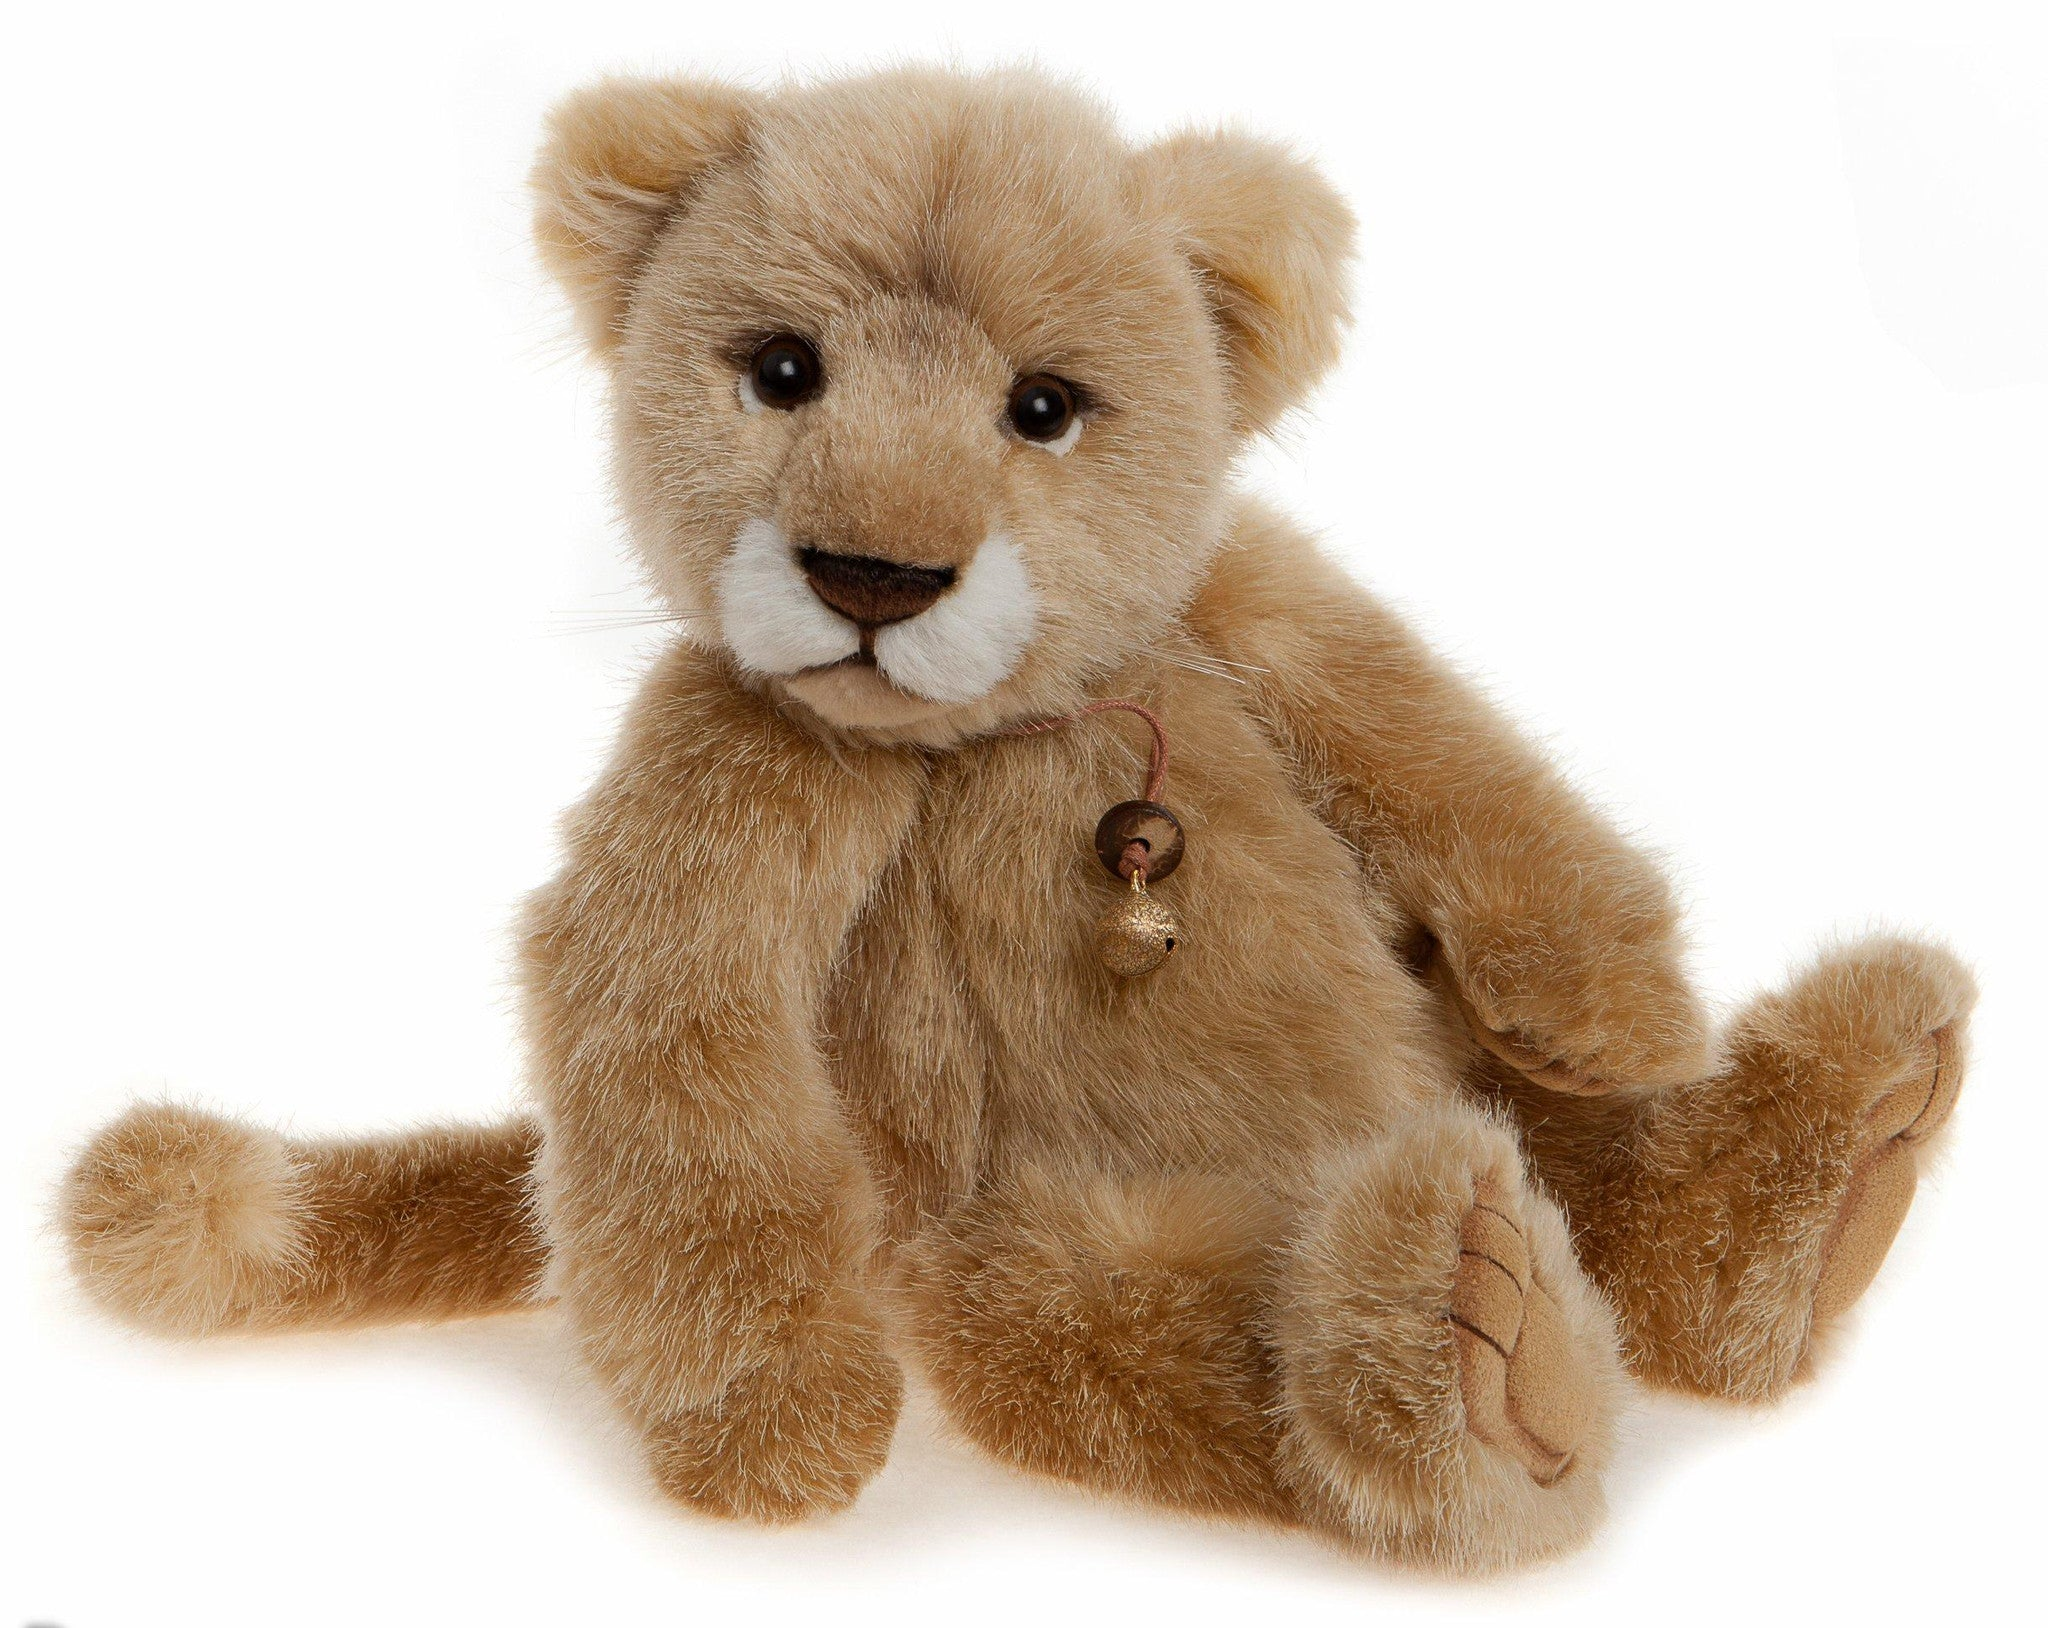 Savannah Baby Lion - Plush Stuffed Animal by Charlie Bears